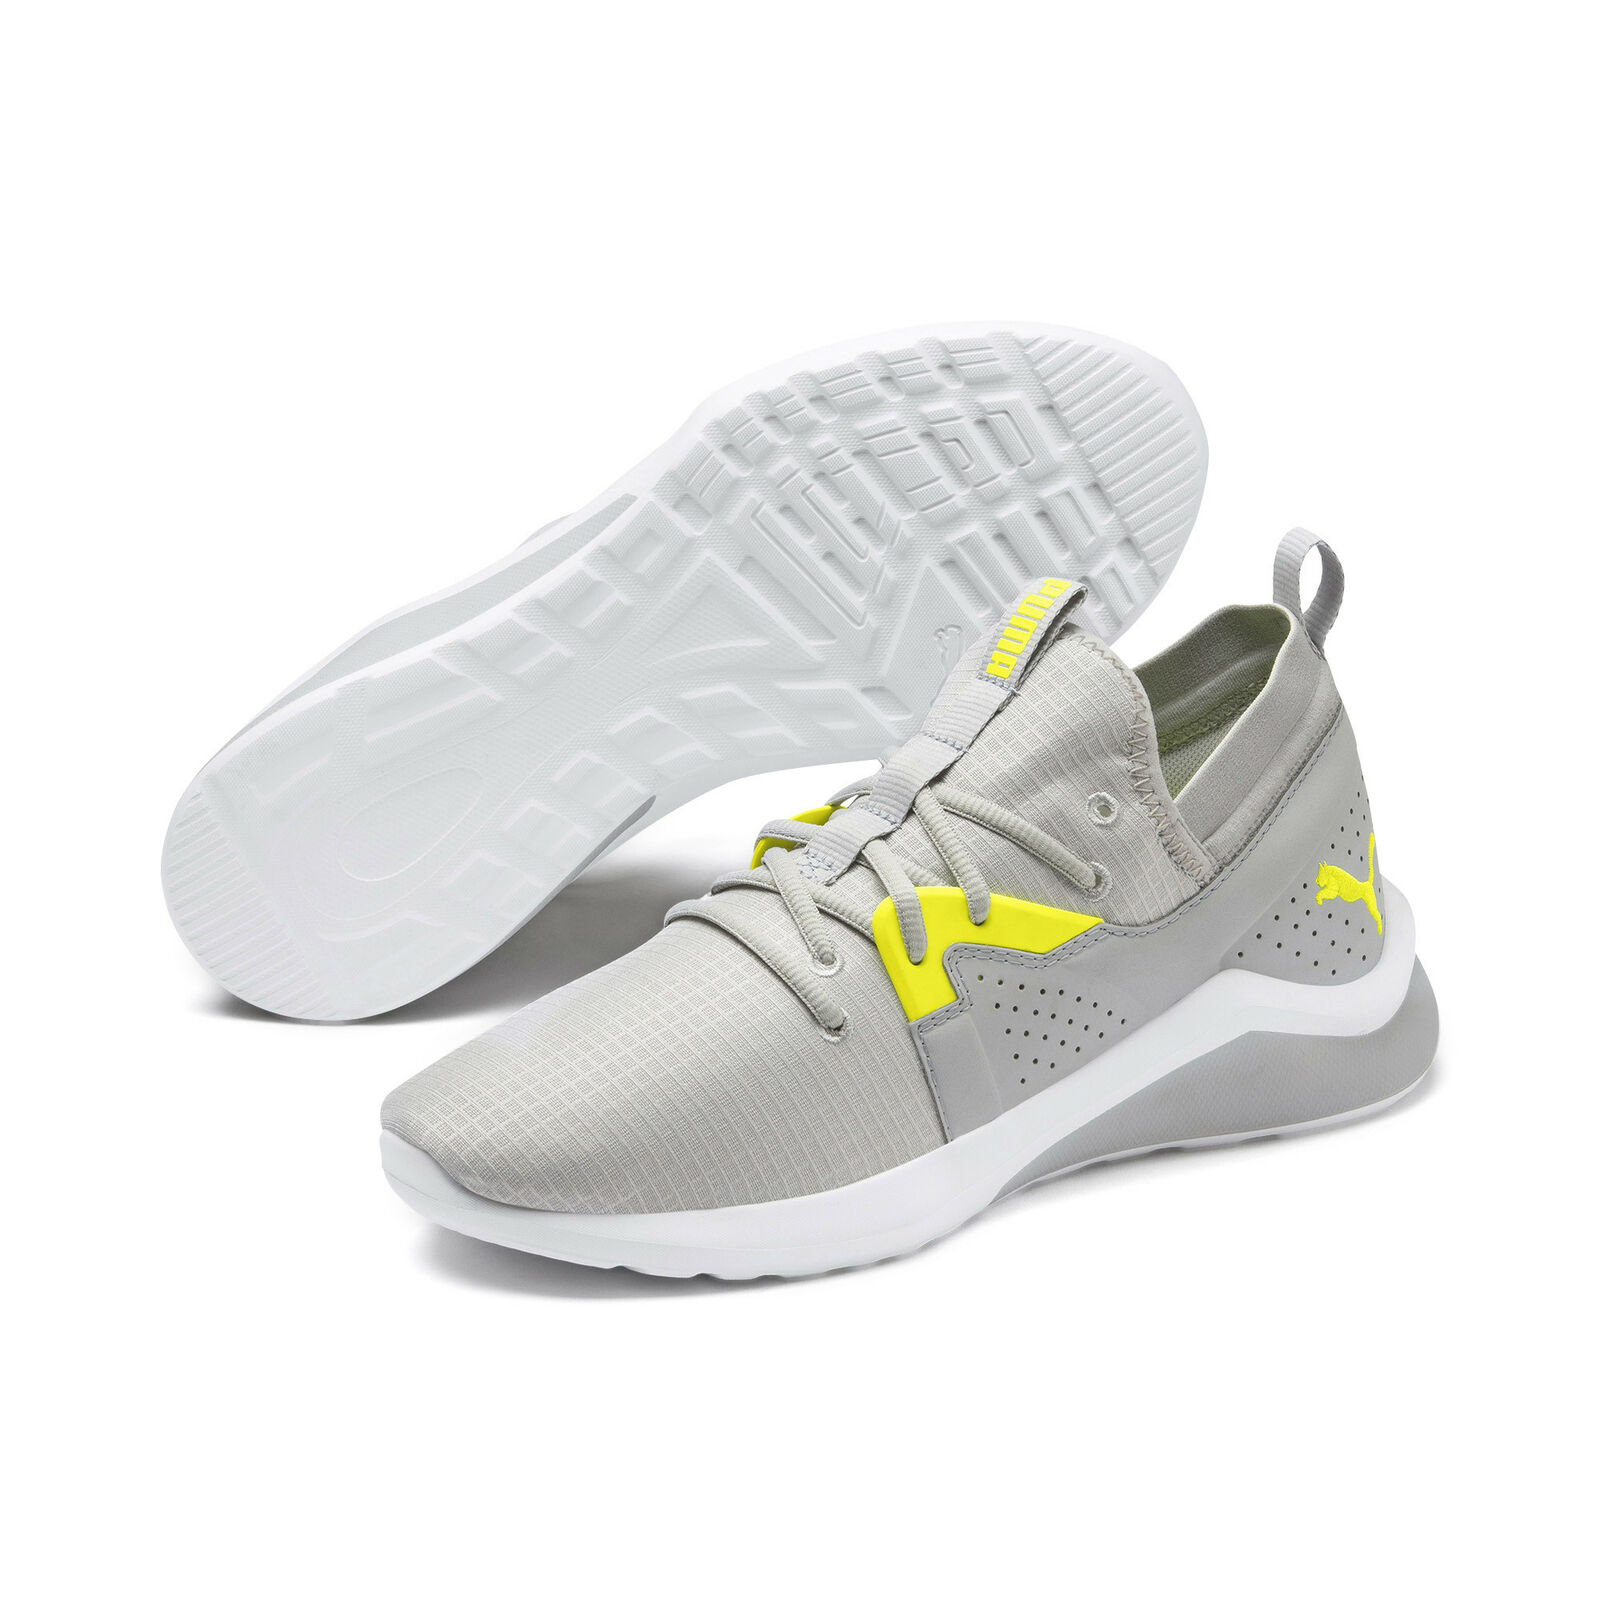 PUMA Emergence Lights Men's Training Shoes Men Shoe Running